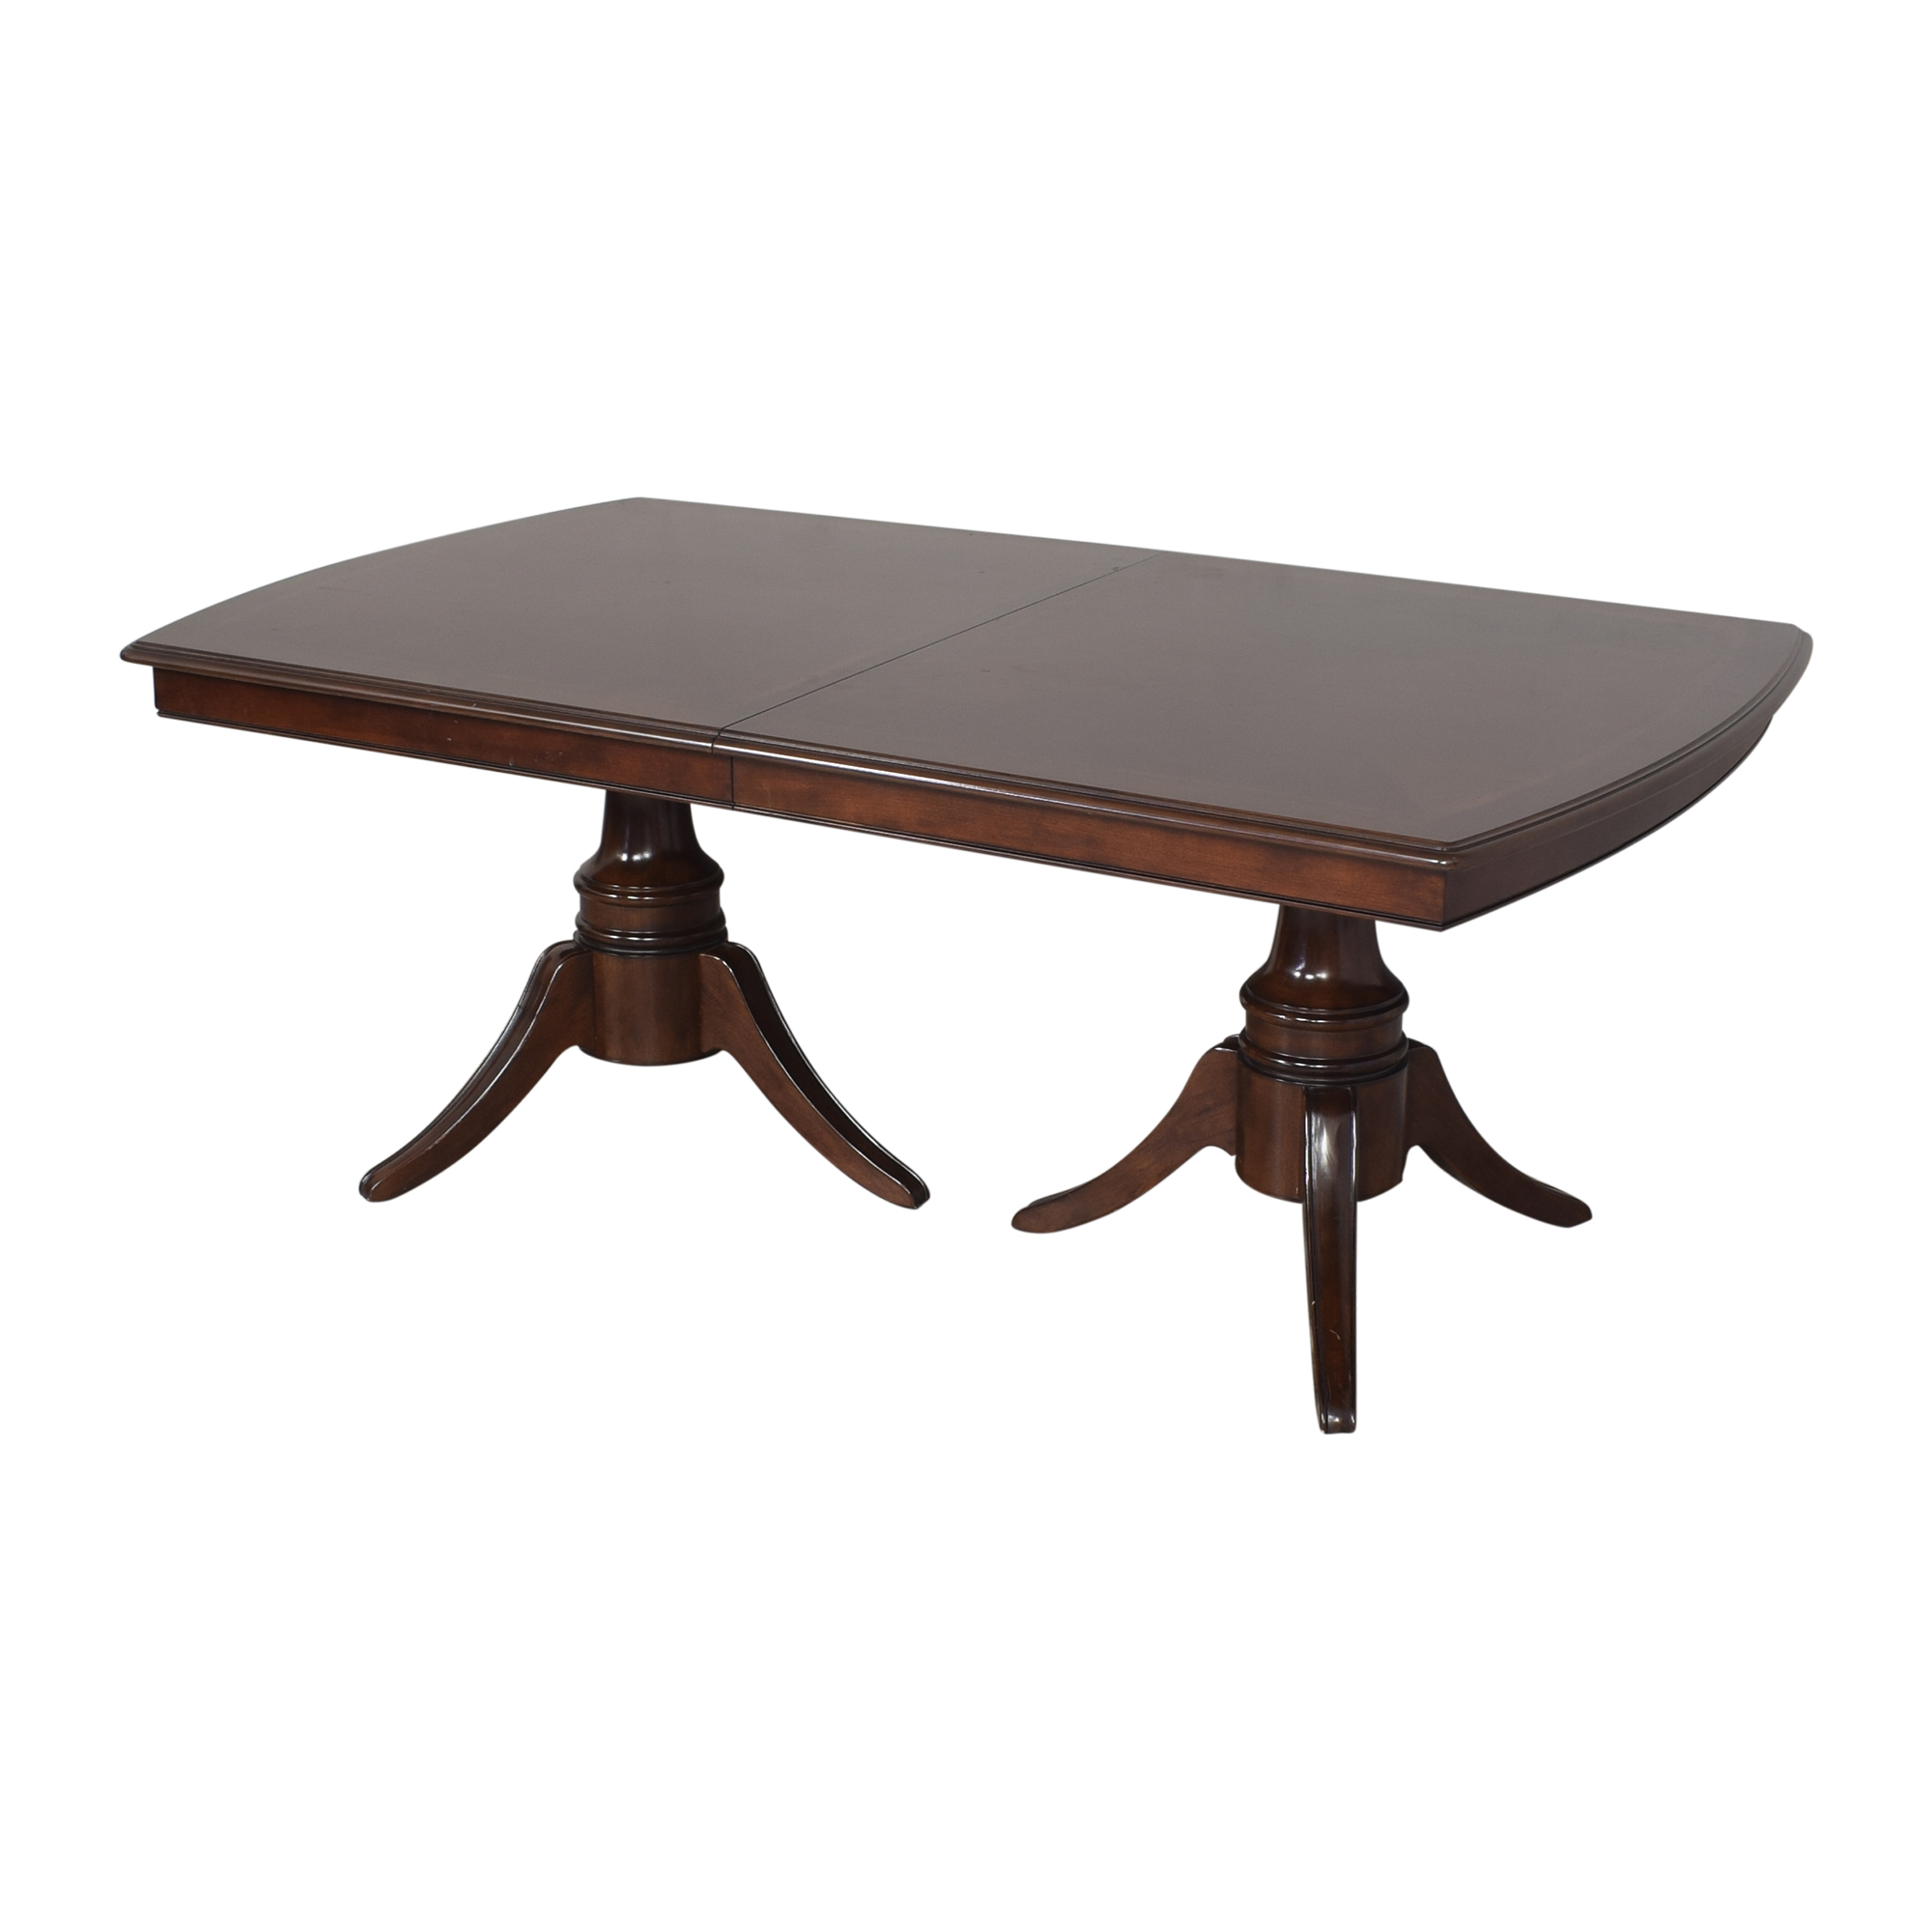 Raymour & Flanigan Raymour & Flanigan Double Pedestal Extendable Dining Table ma